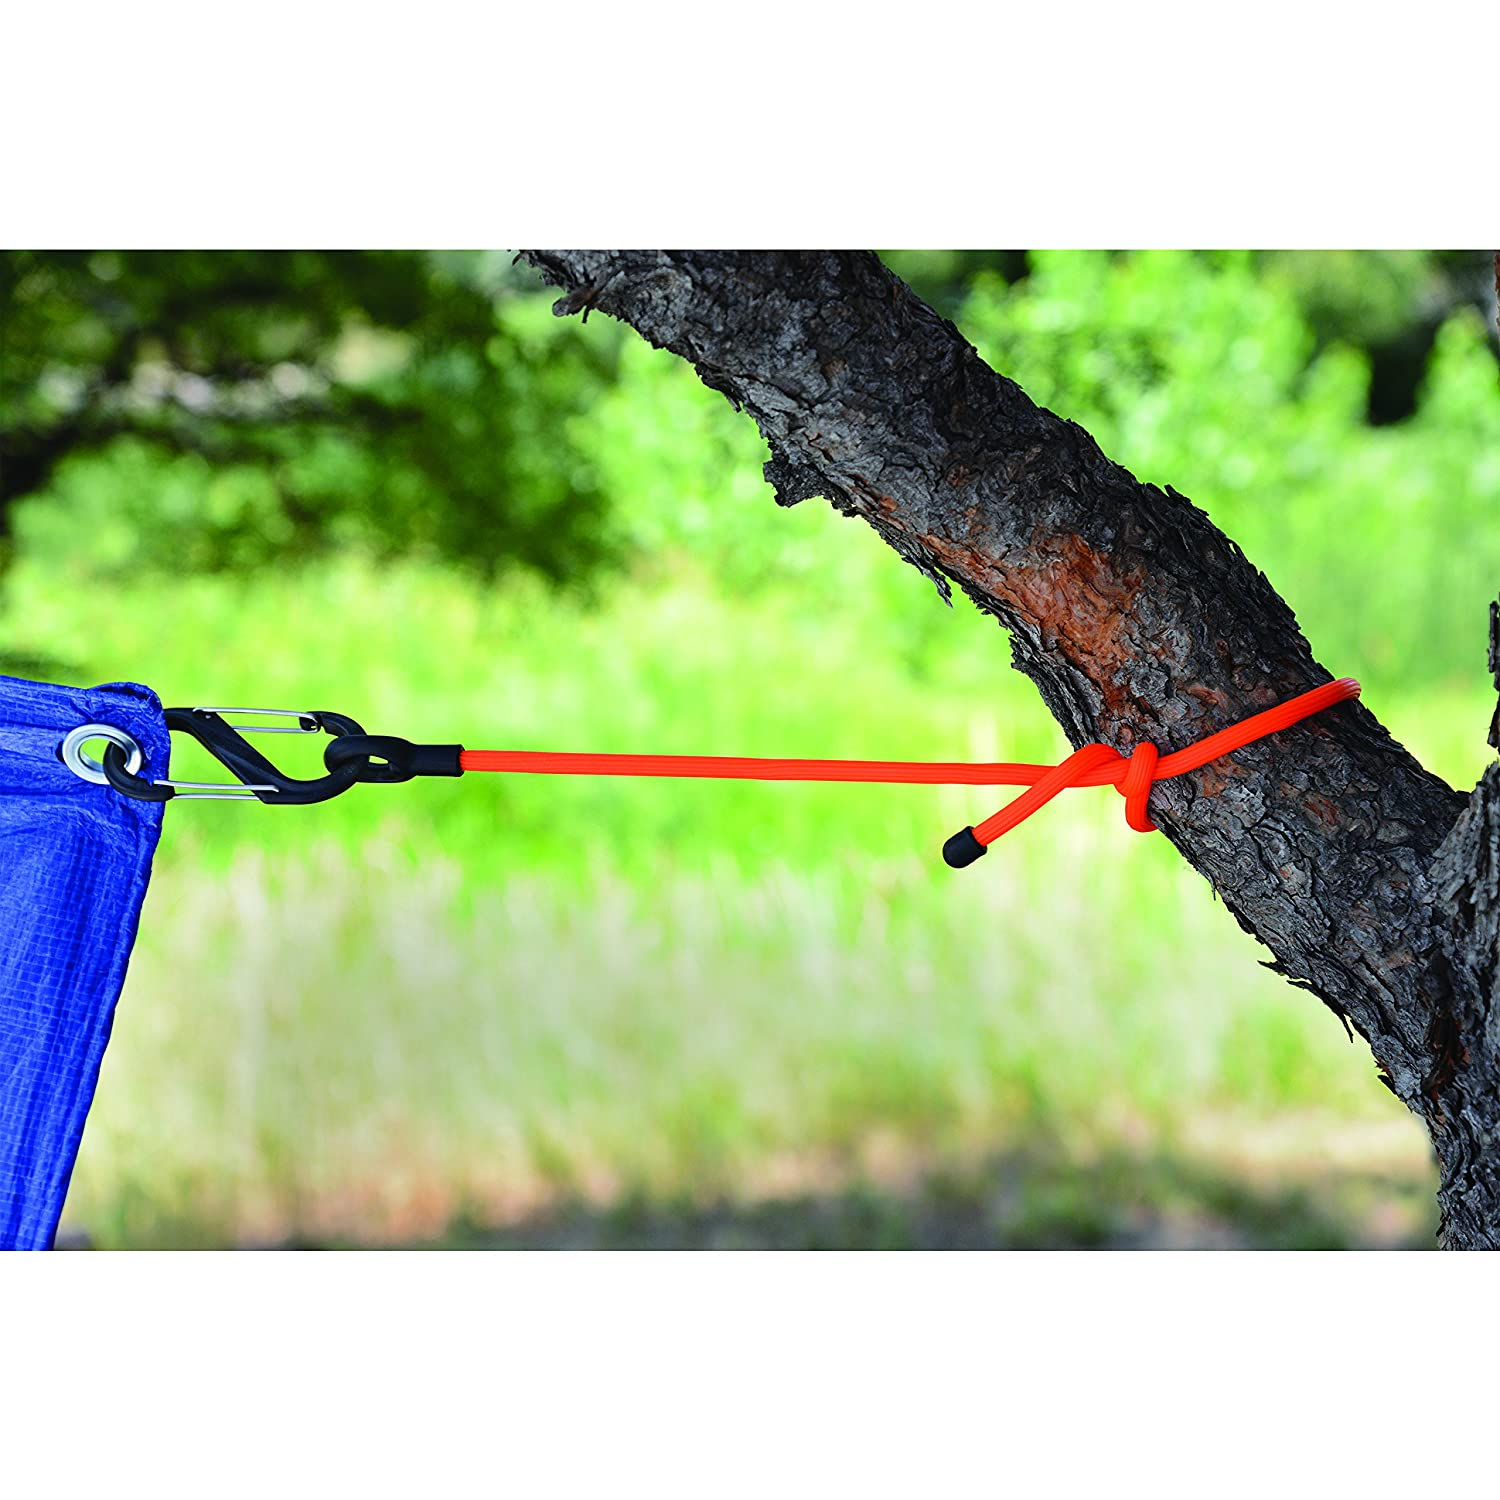 The Original Reusable Rubber Twist Tie with A Convenient S-Biner Clip for Hanging 12-Inch Organizing Black Nite Ize Gear Tie Clippable